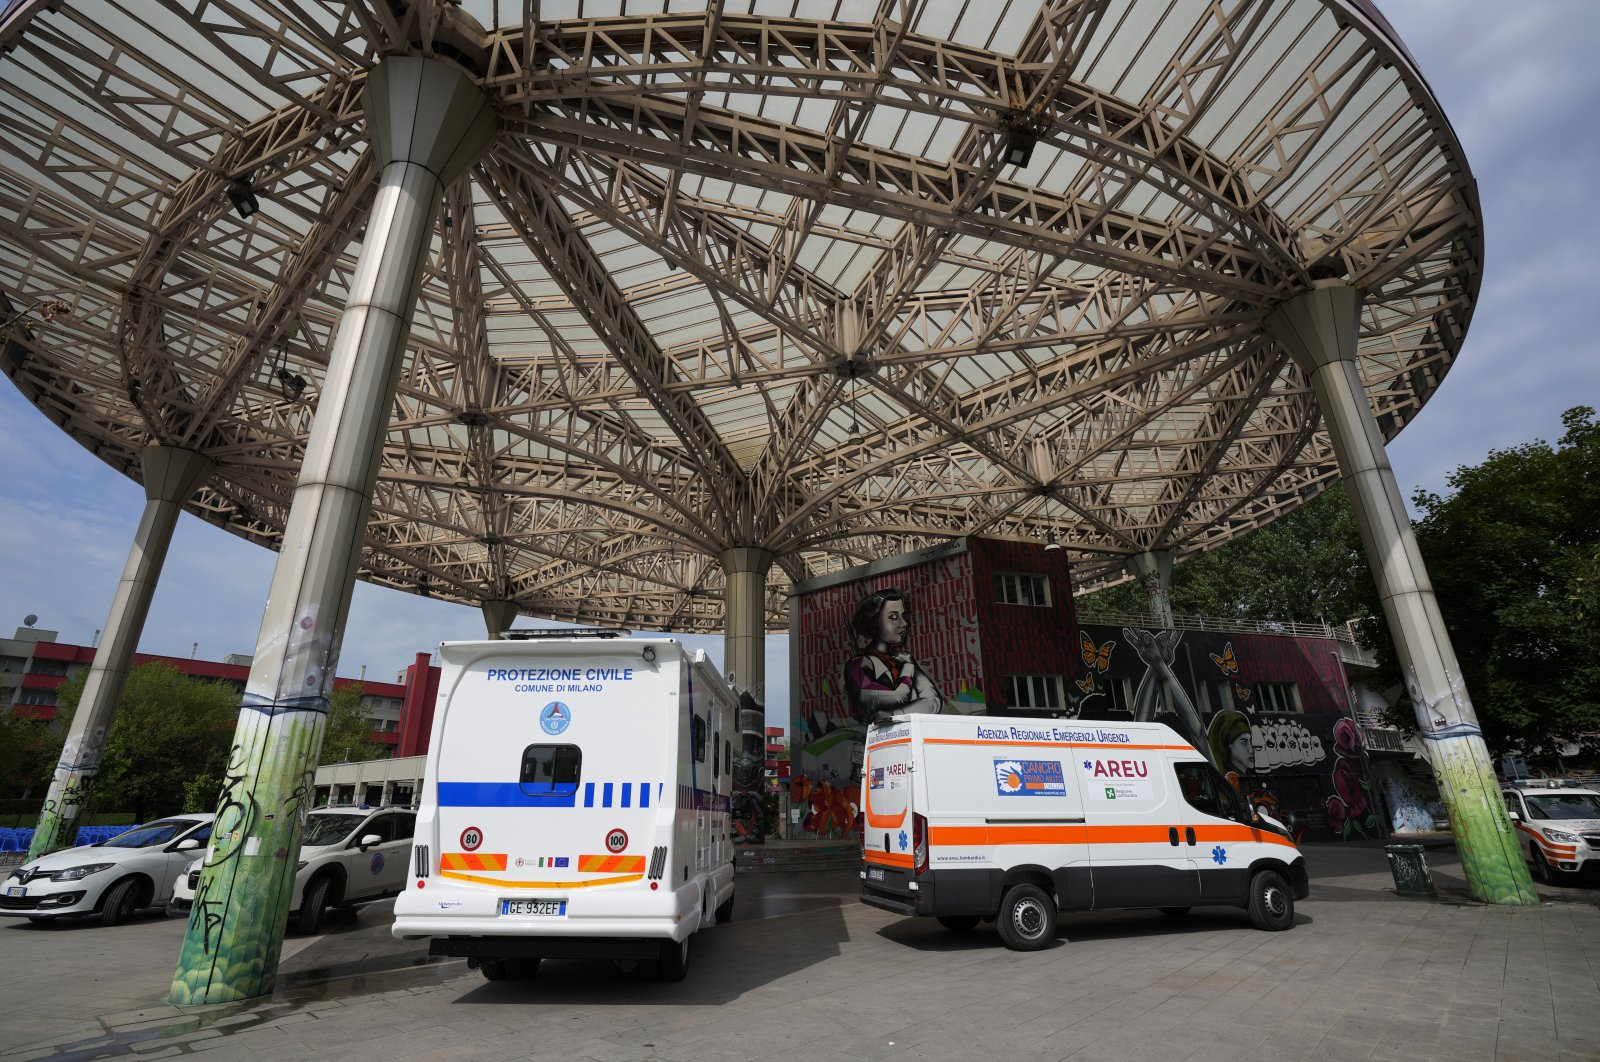 A mobile vaccination unit is parked outside a cultural center on the outskirts of Milan, Italy, July 28, 2021, where people can receive the Johnson & Johnson vaccine for COVID-19. (AP Photo)